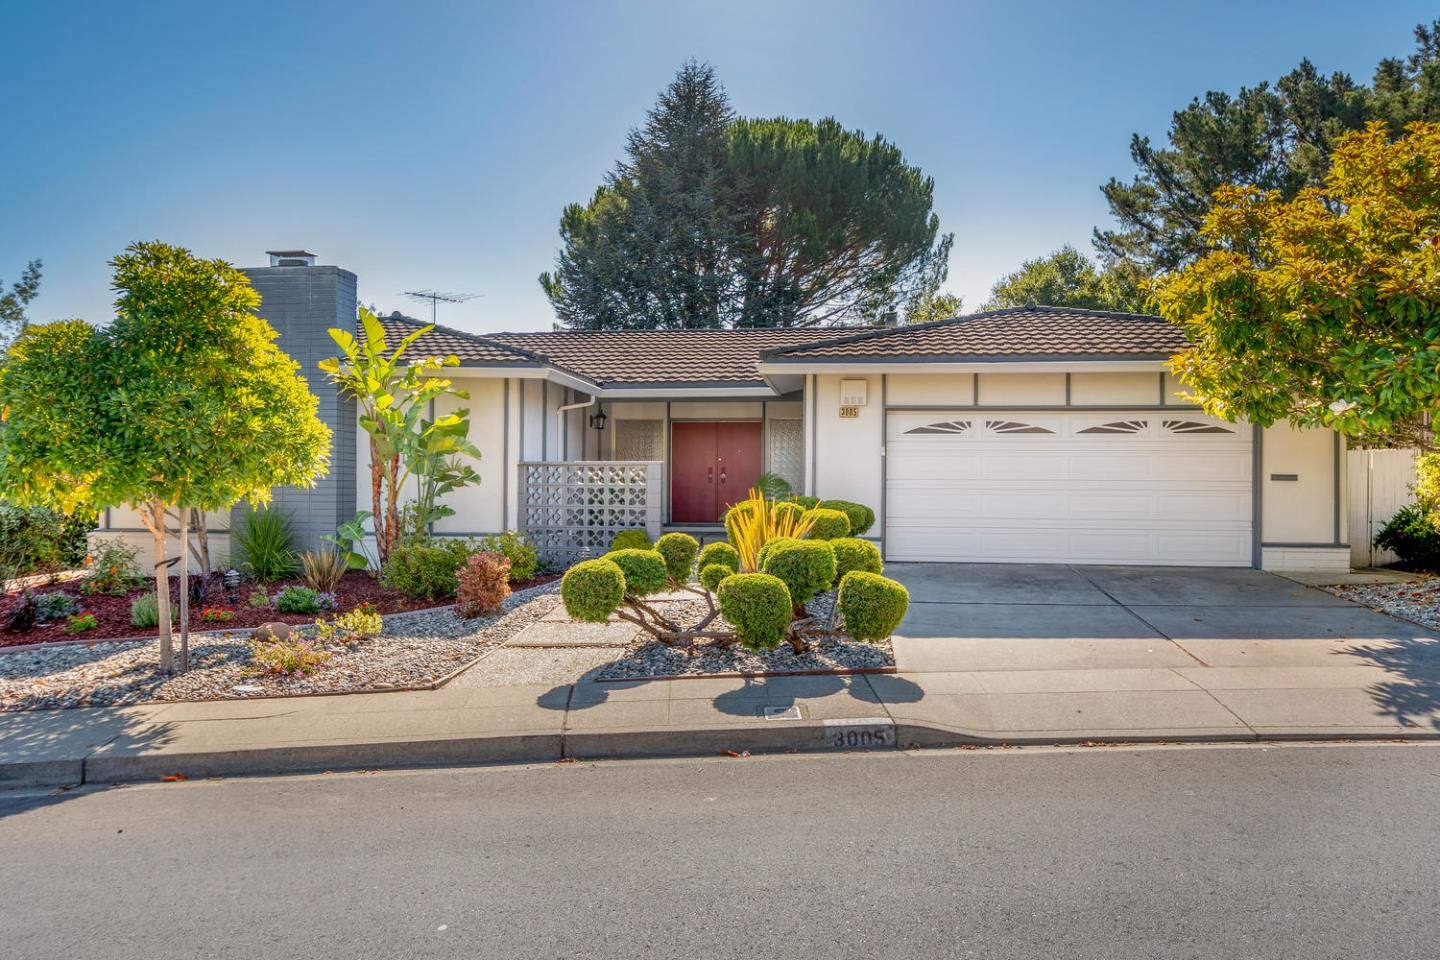 Detail Gallery Image 1 of 1 For 3005 Rivera Dr, Burlingame, CA, 94010 - 3 Beds | 2/1 Baths